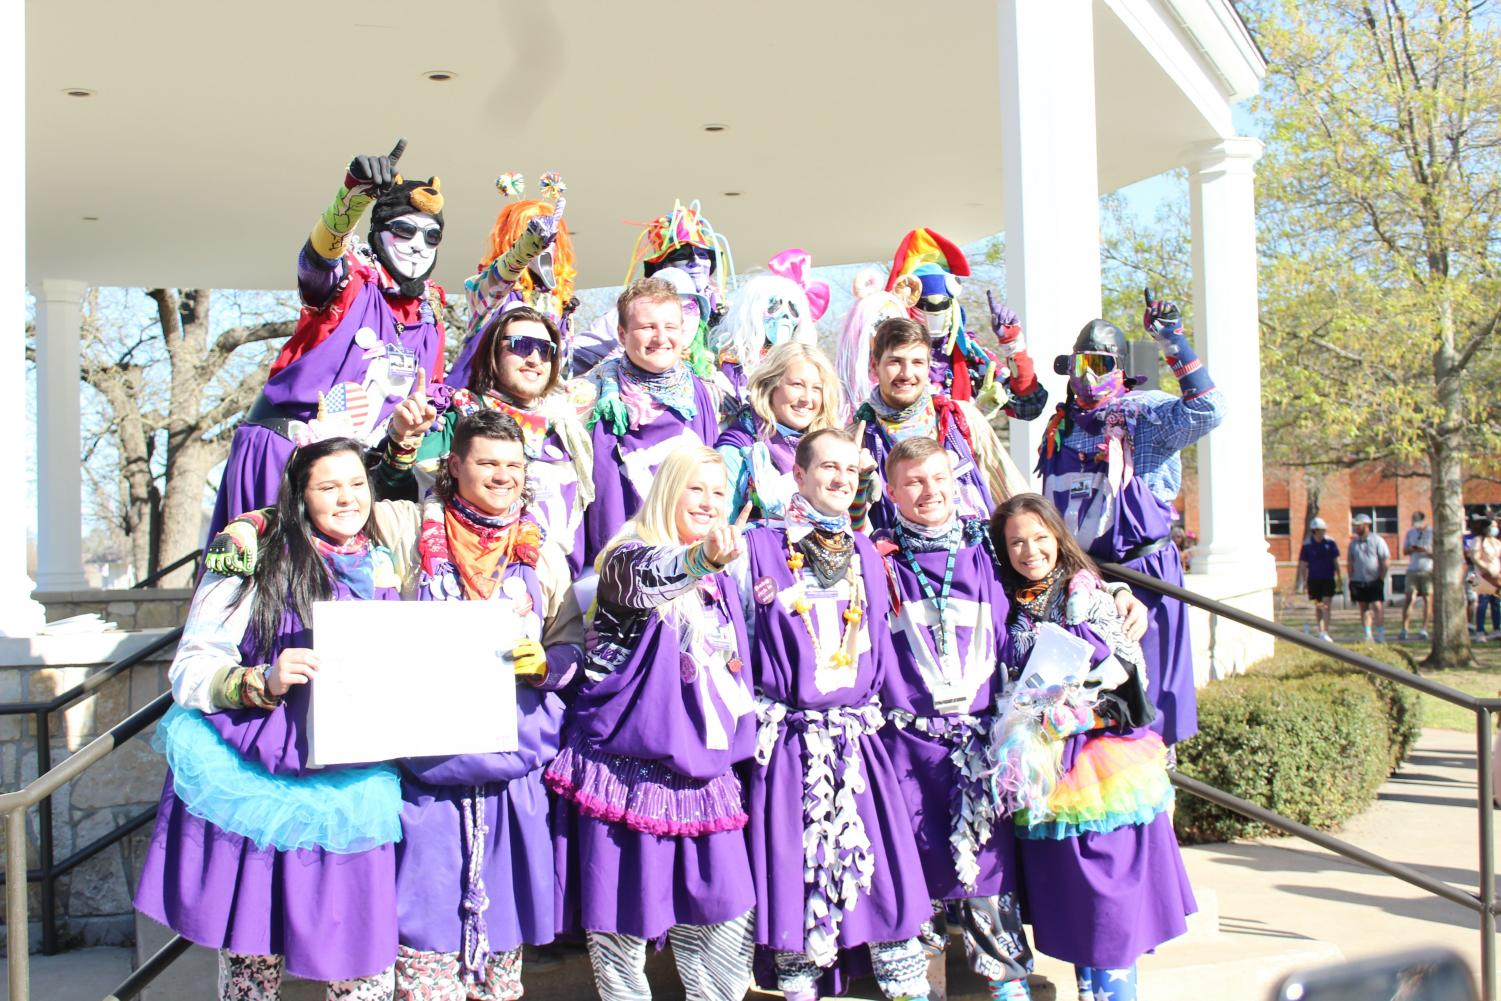 Members of the Purple Poo at the unmasking ceremony on March 26, 2021.